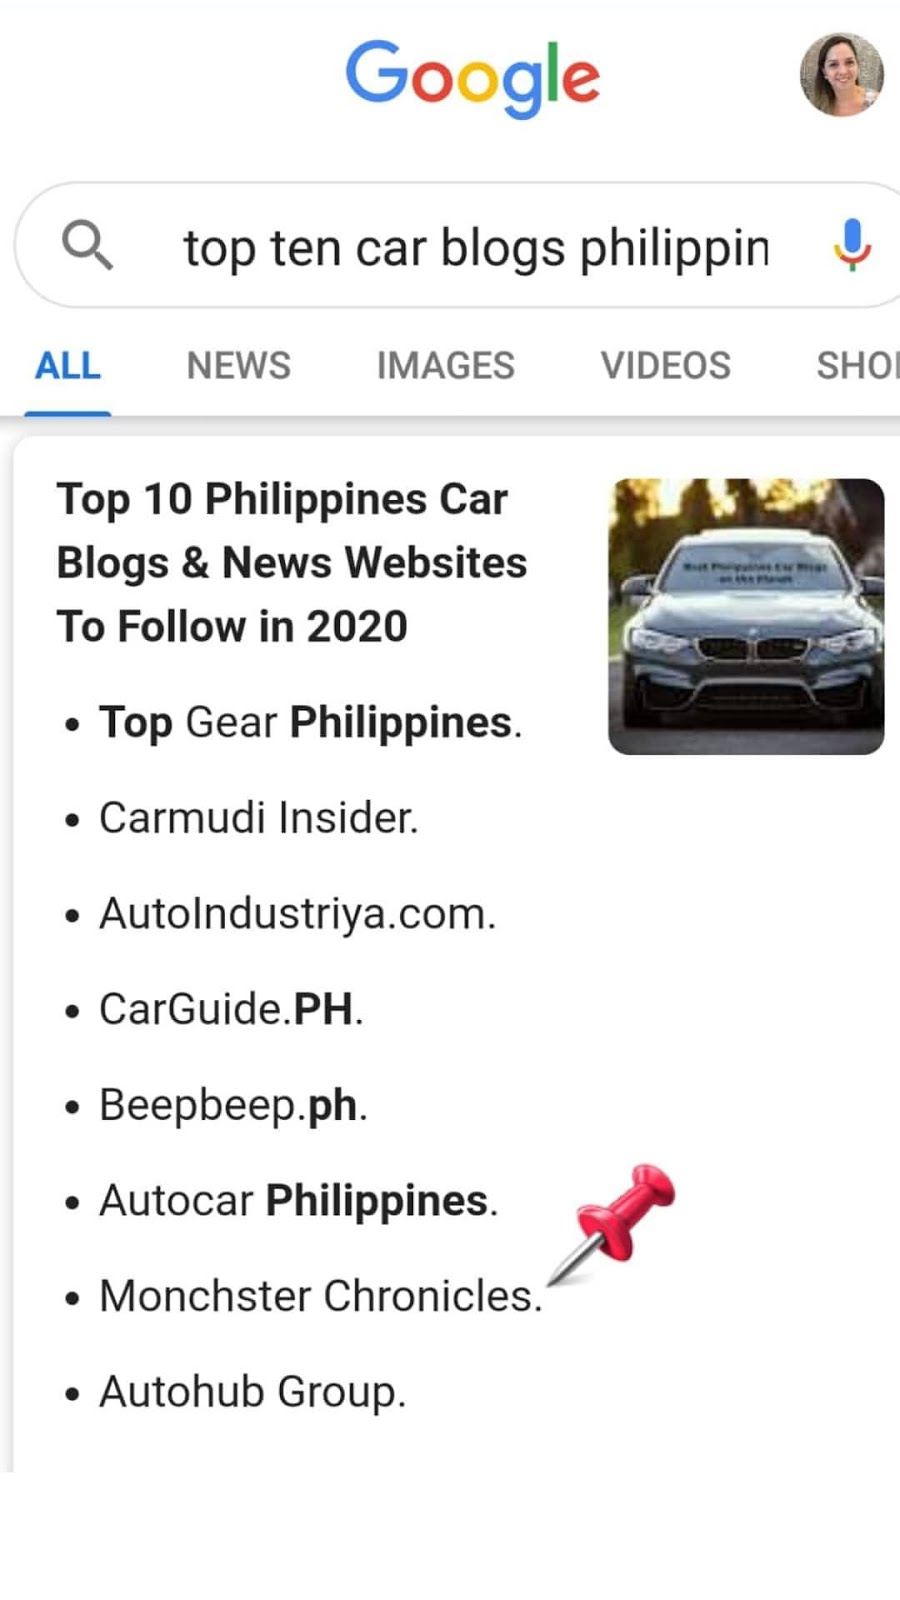 Top 10 Car Blogs and Websites to Follow in 2020